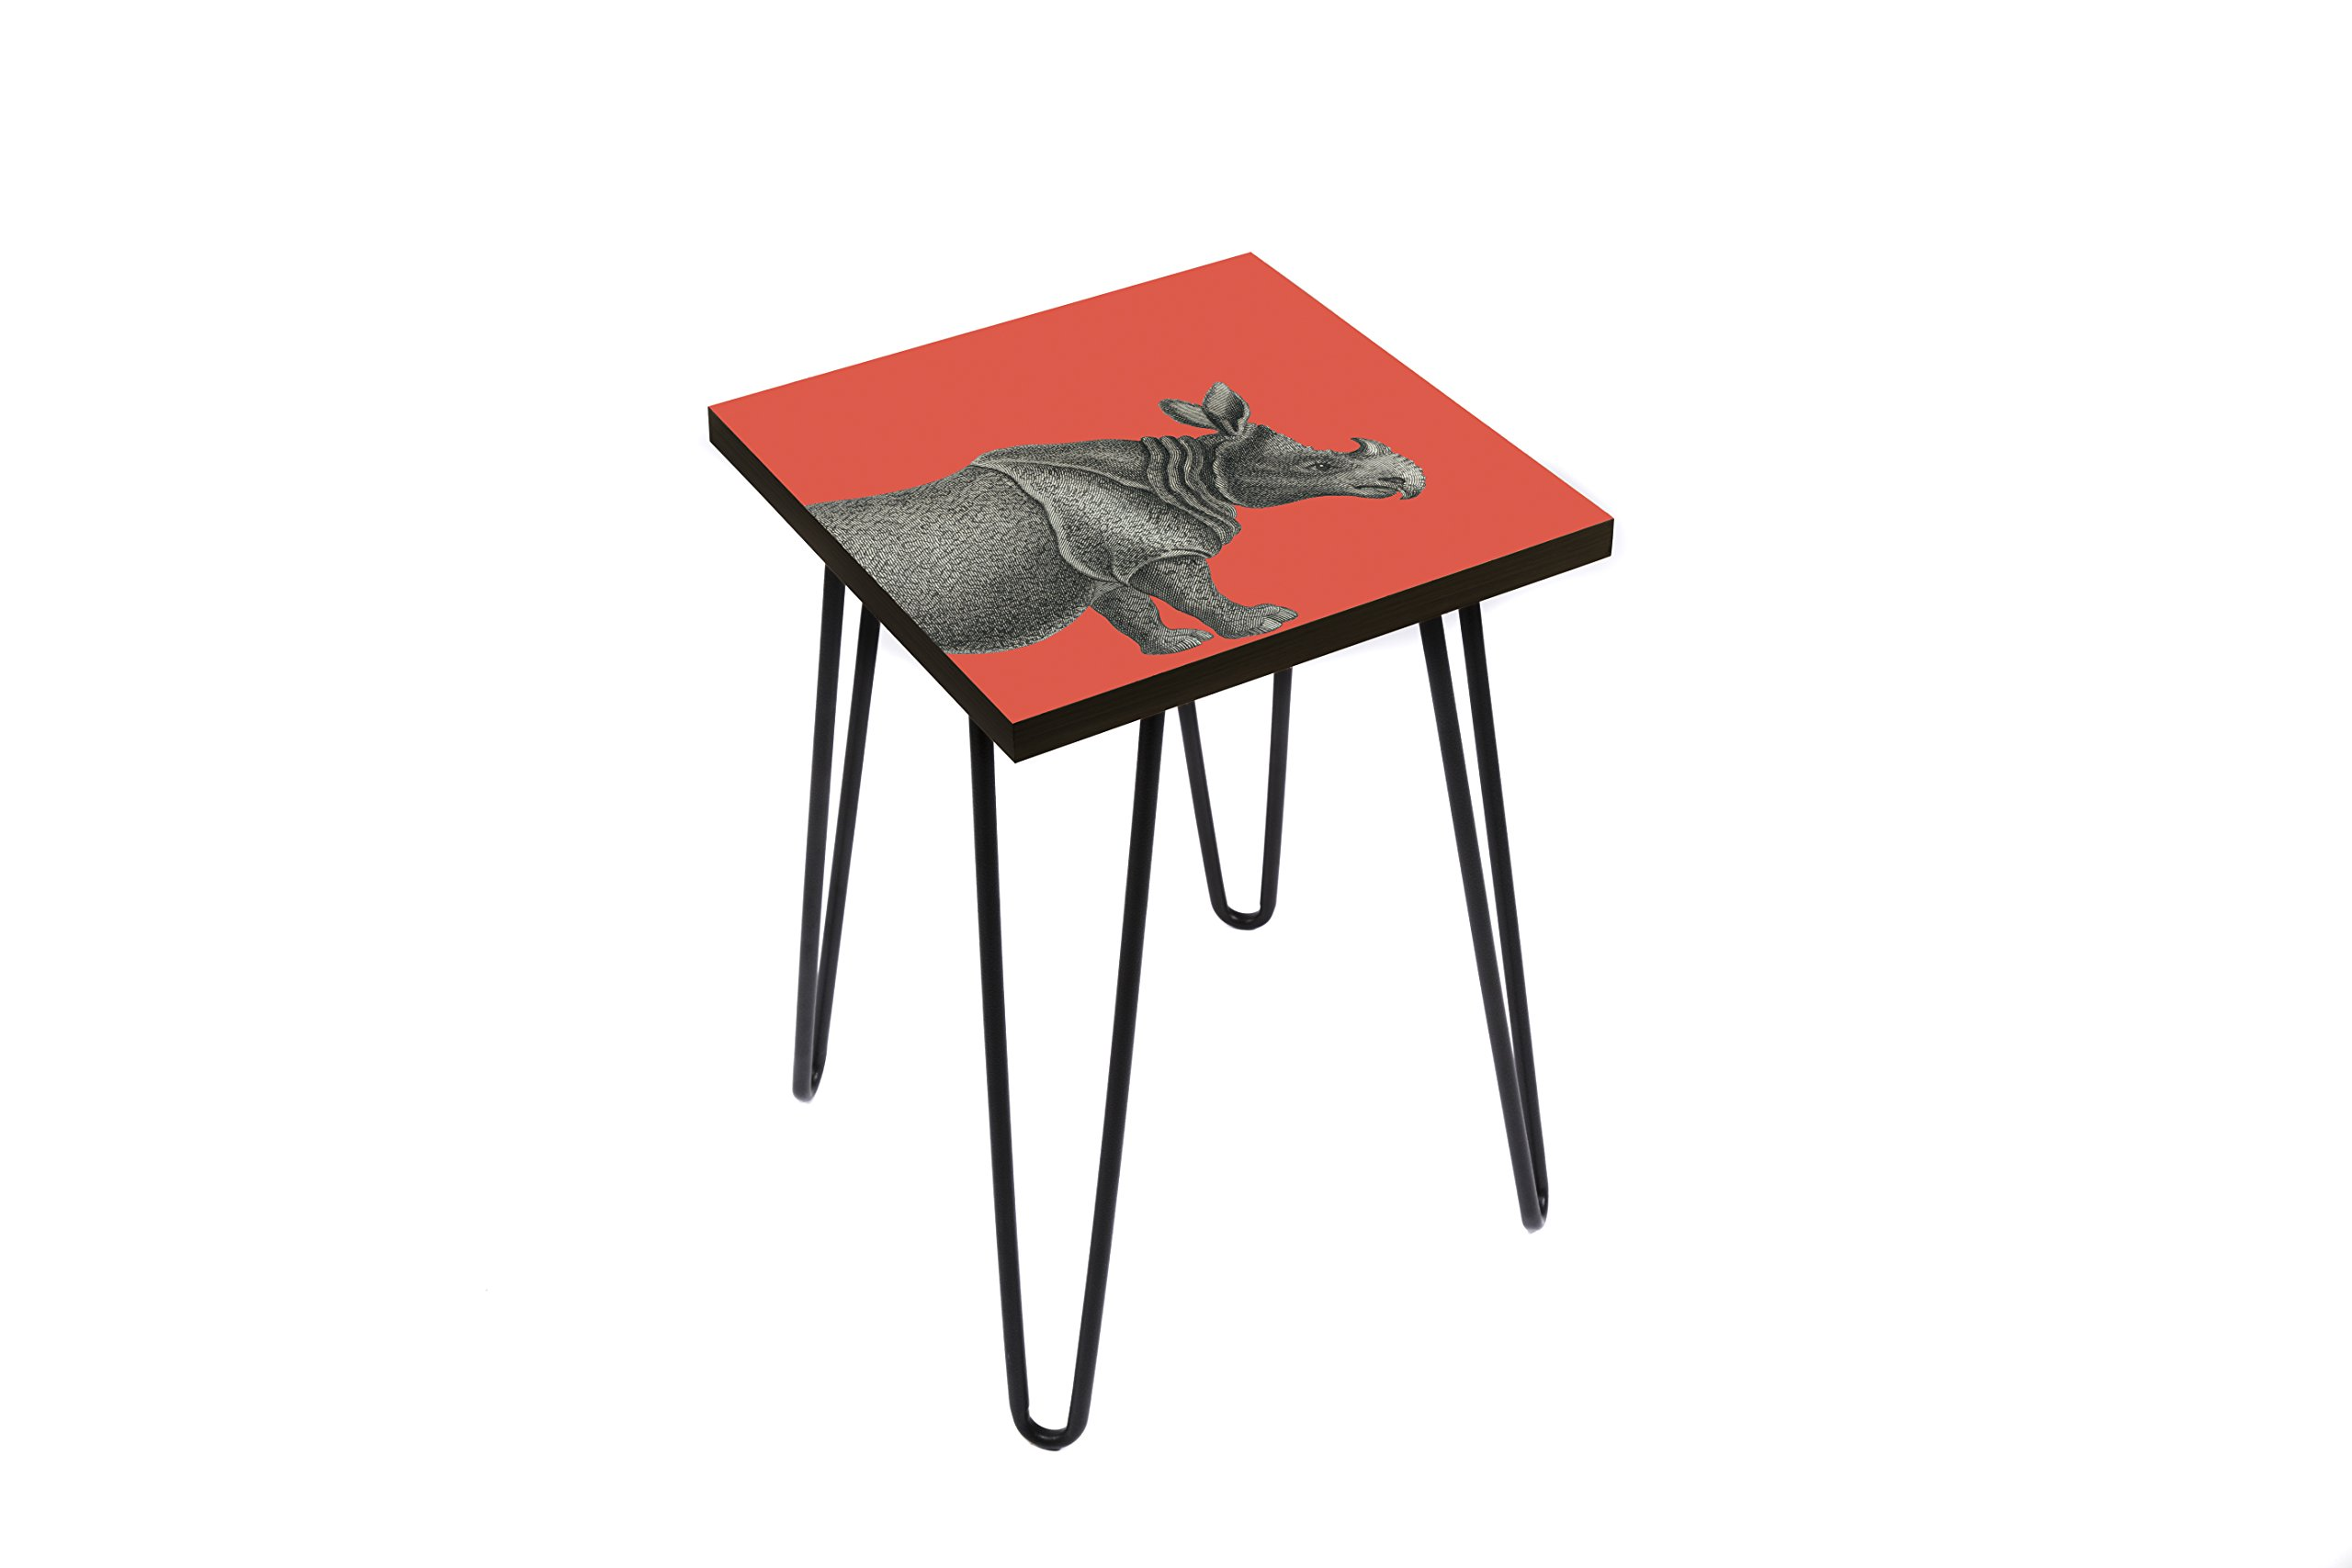 Wood End Table with Digital Print by LAMOU- Steel Hairpin Legs- Baltic Birch with Beautiful Rhino Print